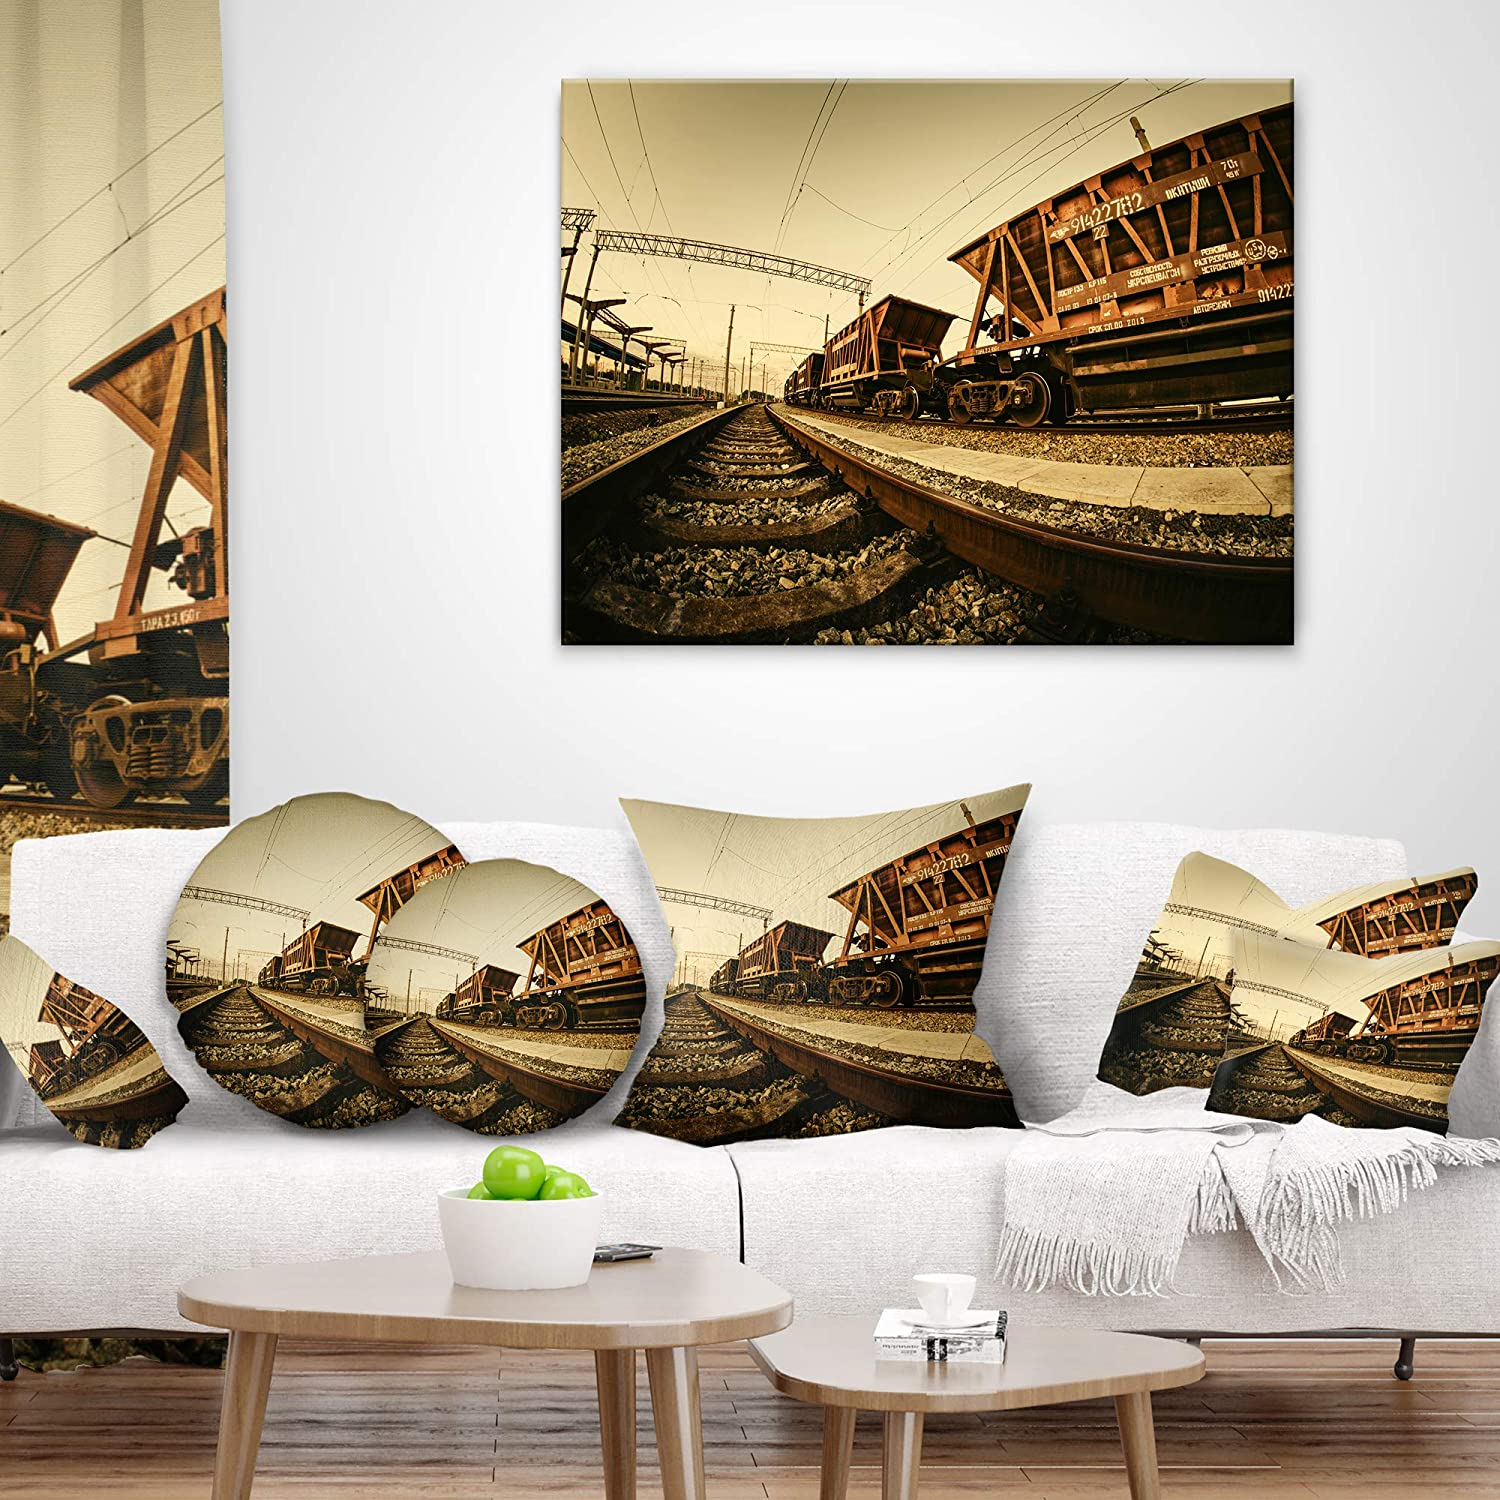 Insert Printed On Both Side in x 26 in Designart CU9349-26-26 Railway Tracks in Ukraine Landscape Photo Cushion Cover for Living Room Sofa Throw Pillow 26 in